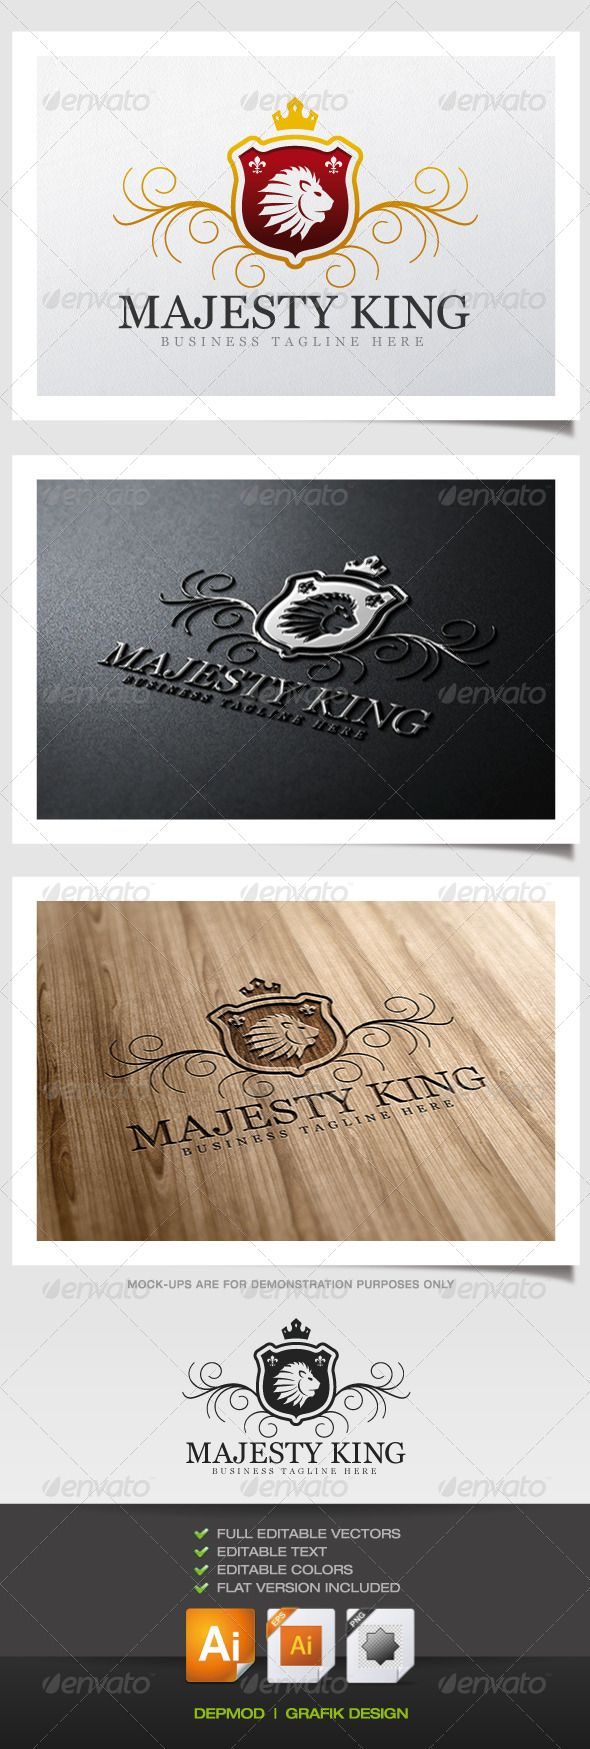 Majesty King Logo #GraphicRiver Crest logo of a lion head on a gold and burgundy shield. Can be used for many kind of project. Full vectors, this logo can be easily resize and colors can be changed to fit your colors project. Flat versions for print also included. The font used is in a download file in the package. Font : .fontpalace /font-details/Georgia/ Files provided : .ai (CC and CS), .eps, .jpg, .png (transparent) Created: 25September13 GraphicsFilesIncluded: TransparentPNG #JPGImage…